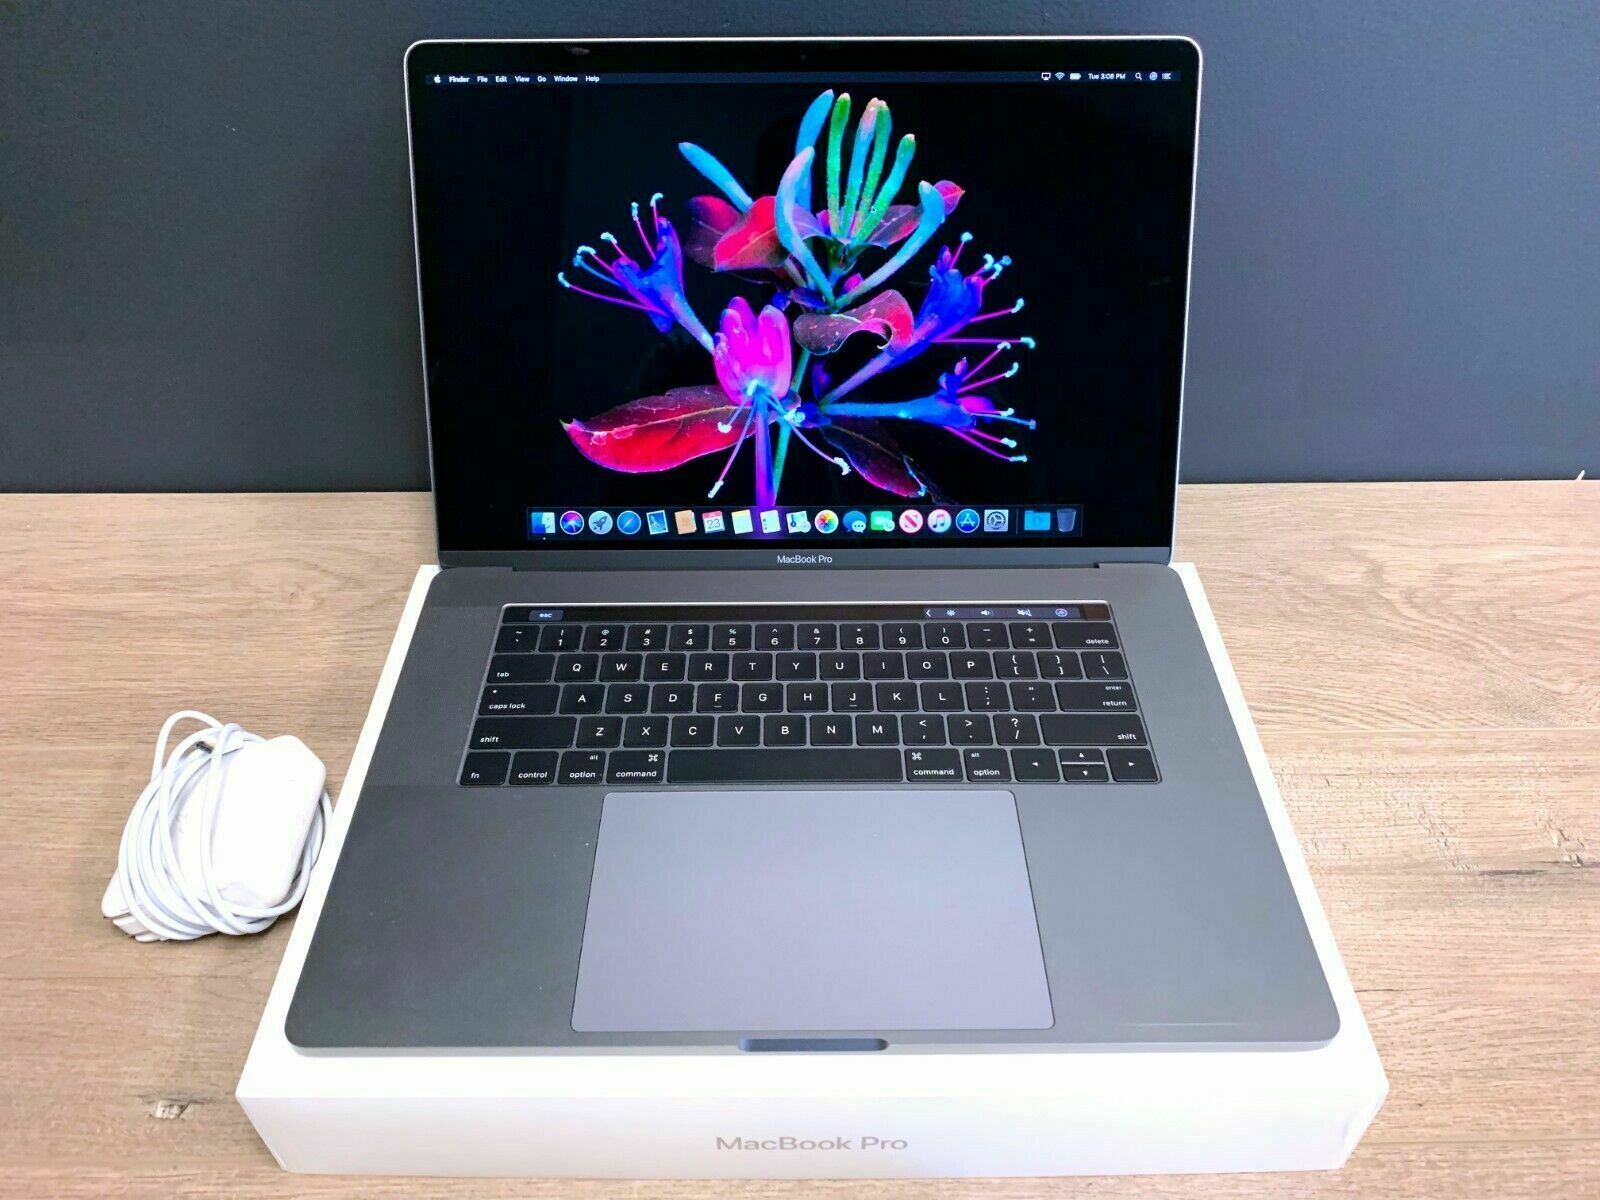 APPLE MACBOOK PRO 15 TOUCH BAR | NEW BATTERY | SPACE GRAY | A GRADE | 512GB SSD. Buy it now for 1549.00